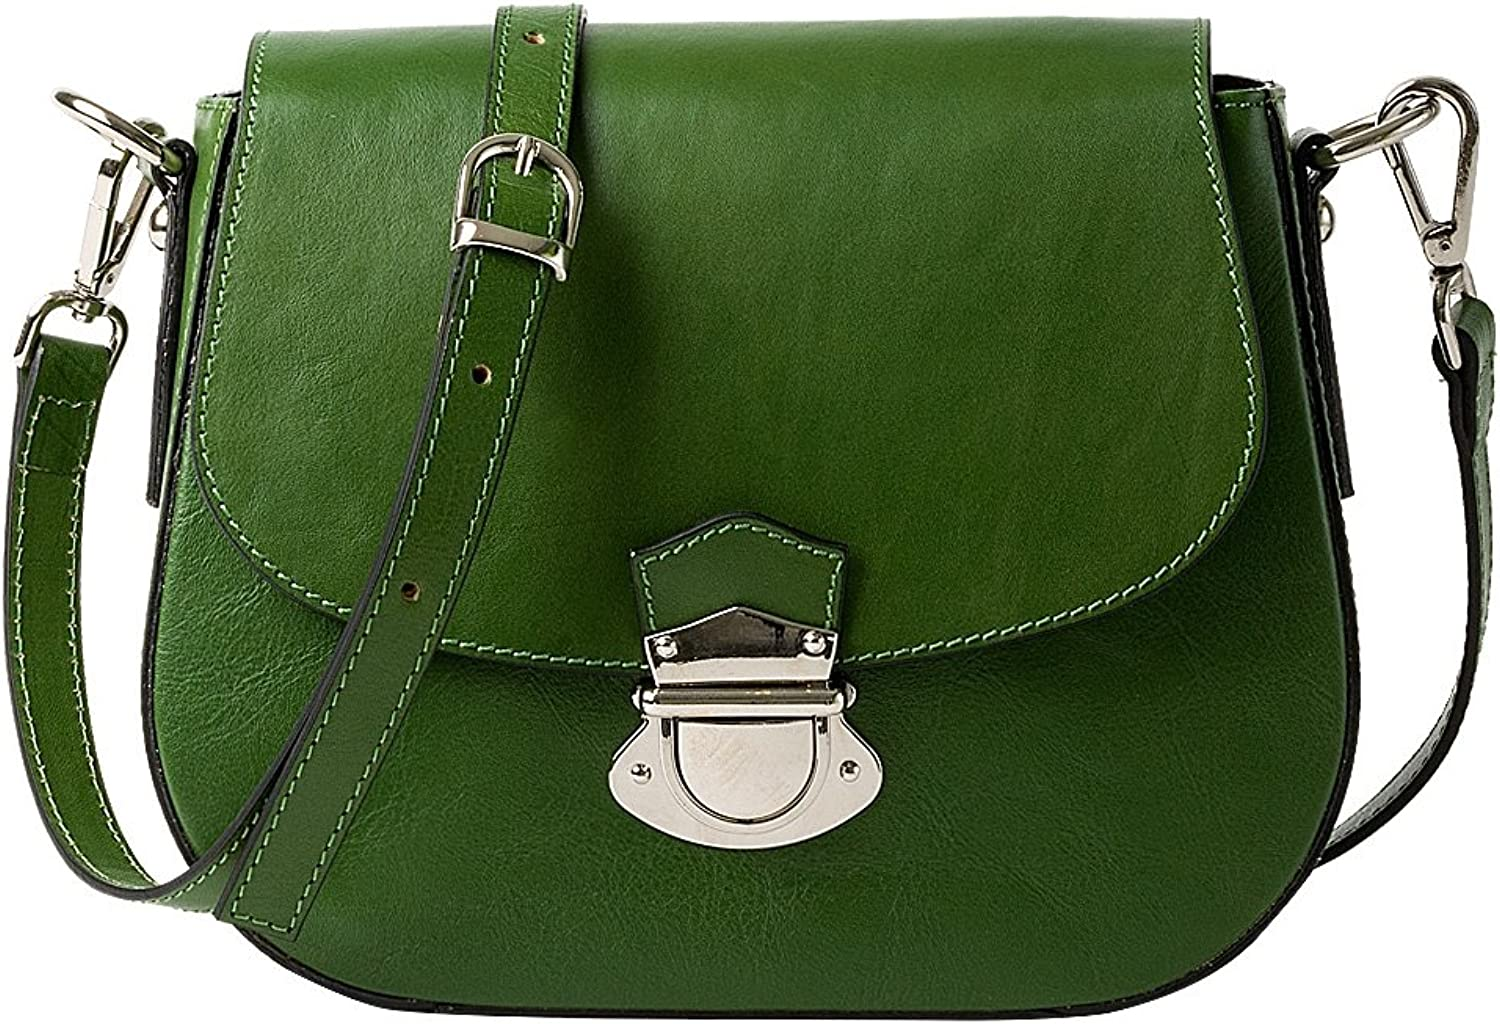 HONEY BAG Italian Leather Cowhide leather women's shoulder bag  GIGLIOLA  GREEN